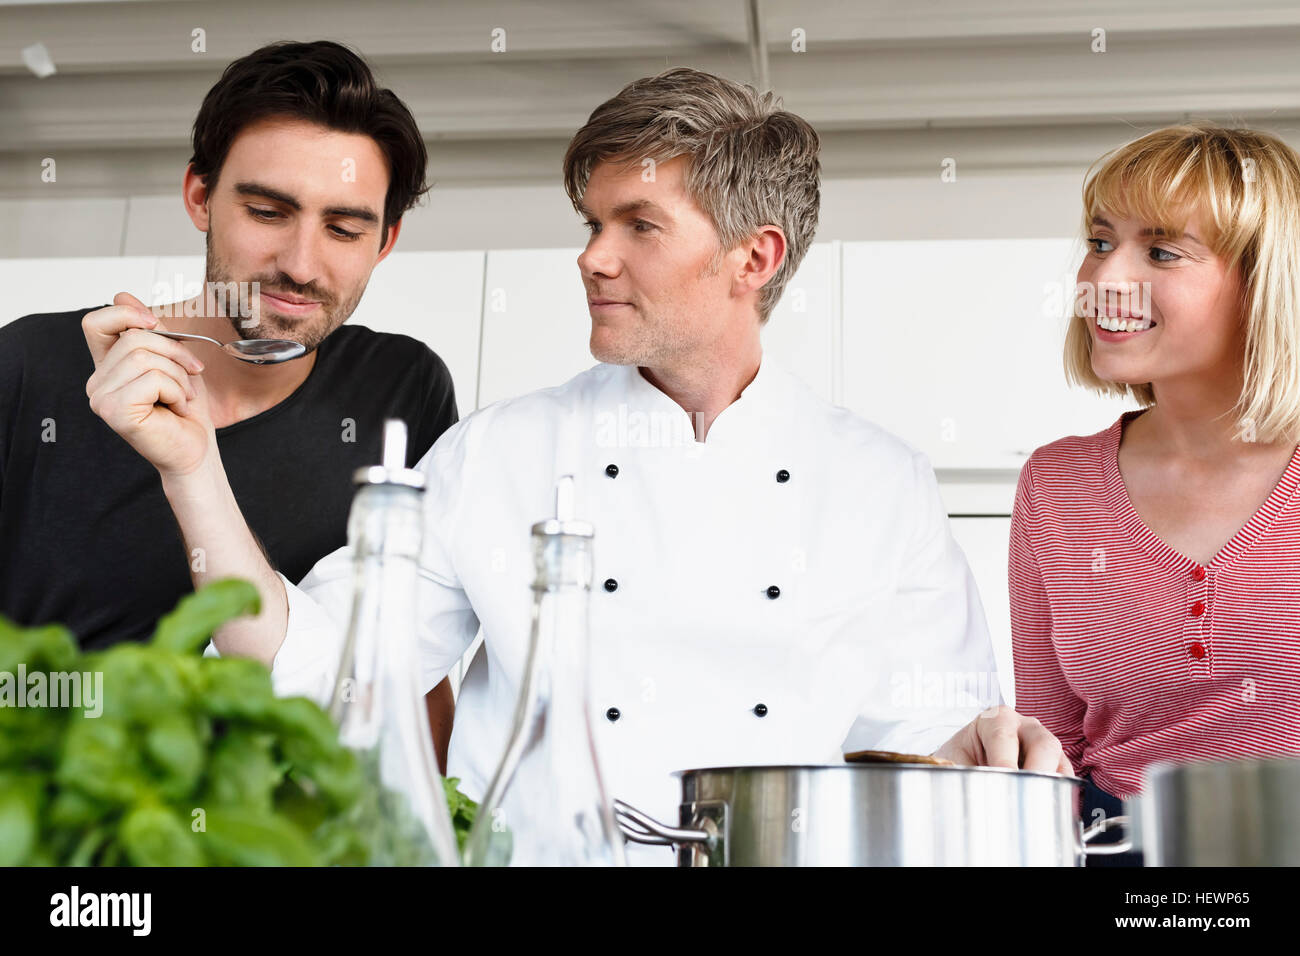 Chef and couple in kitchen tasting food Stock Photo